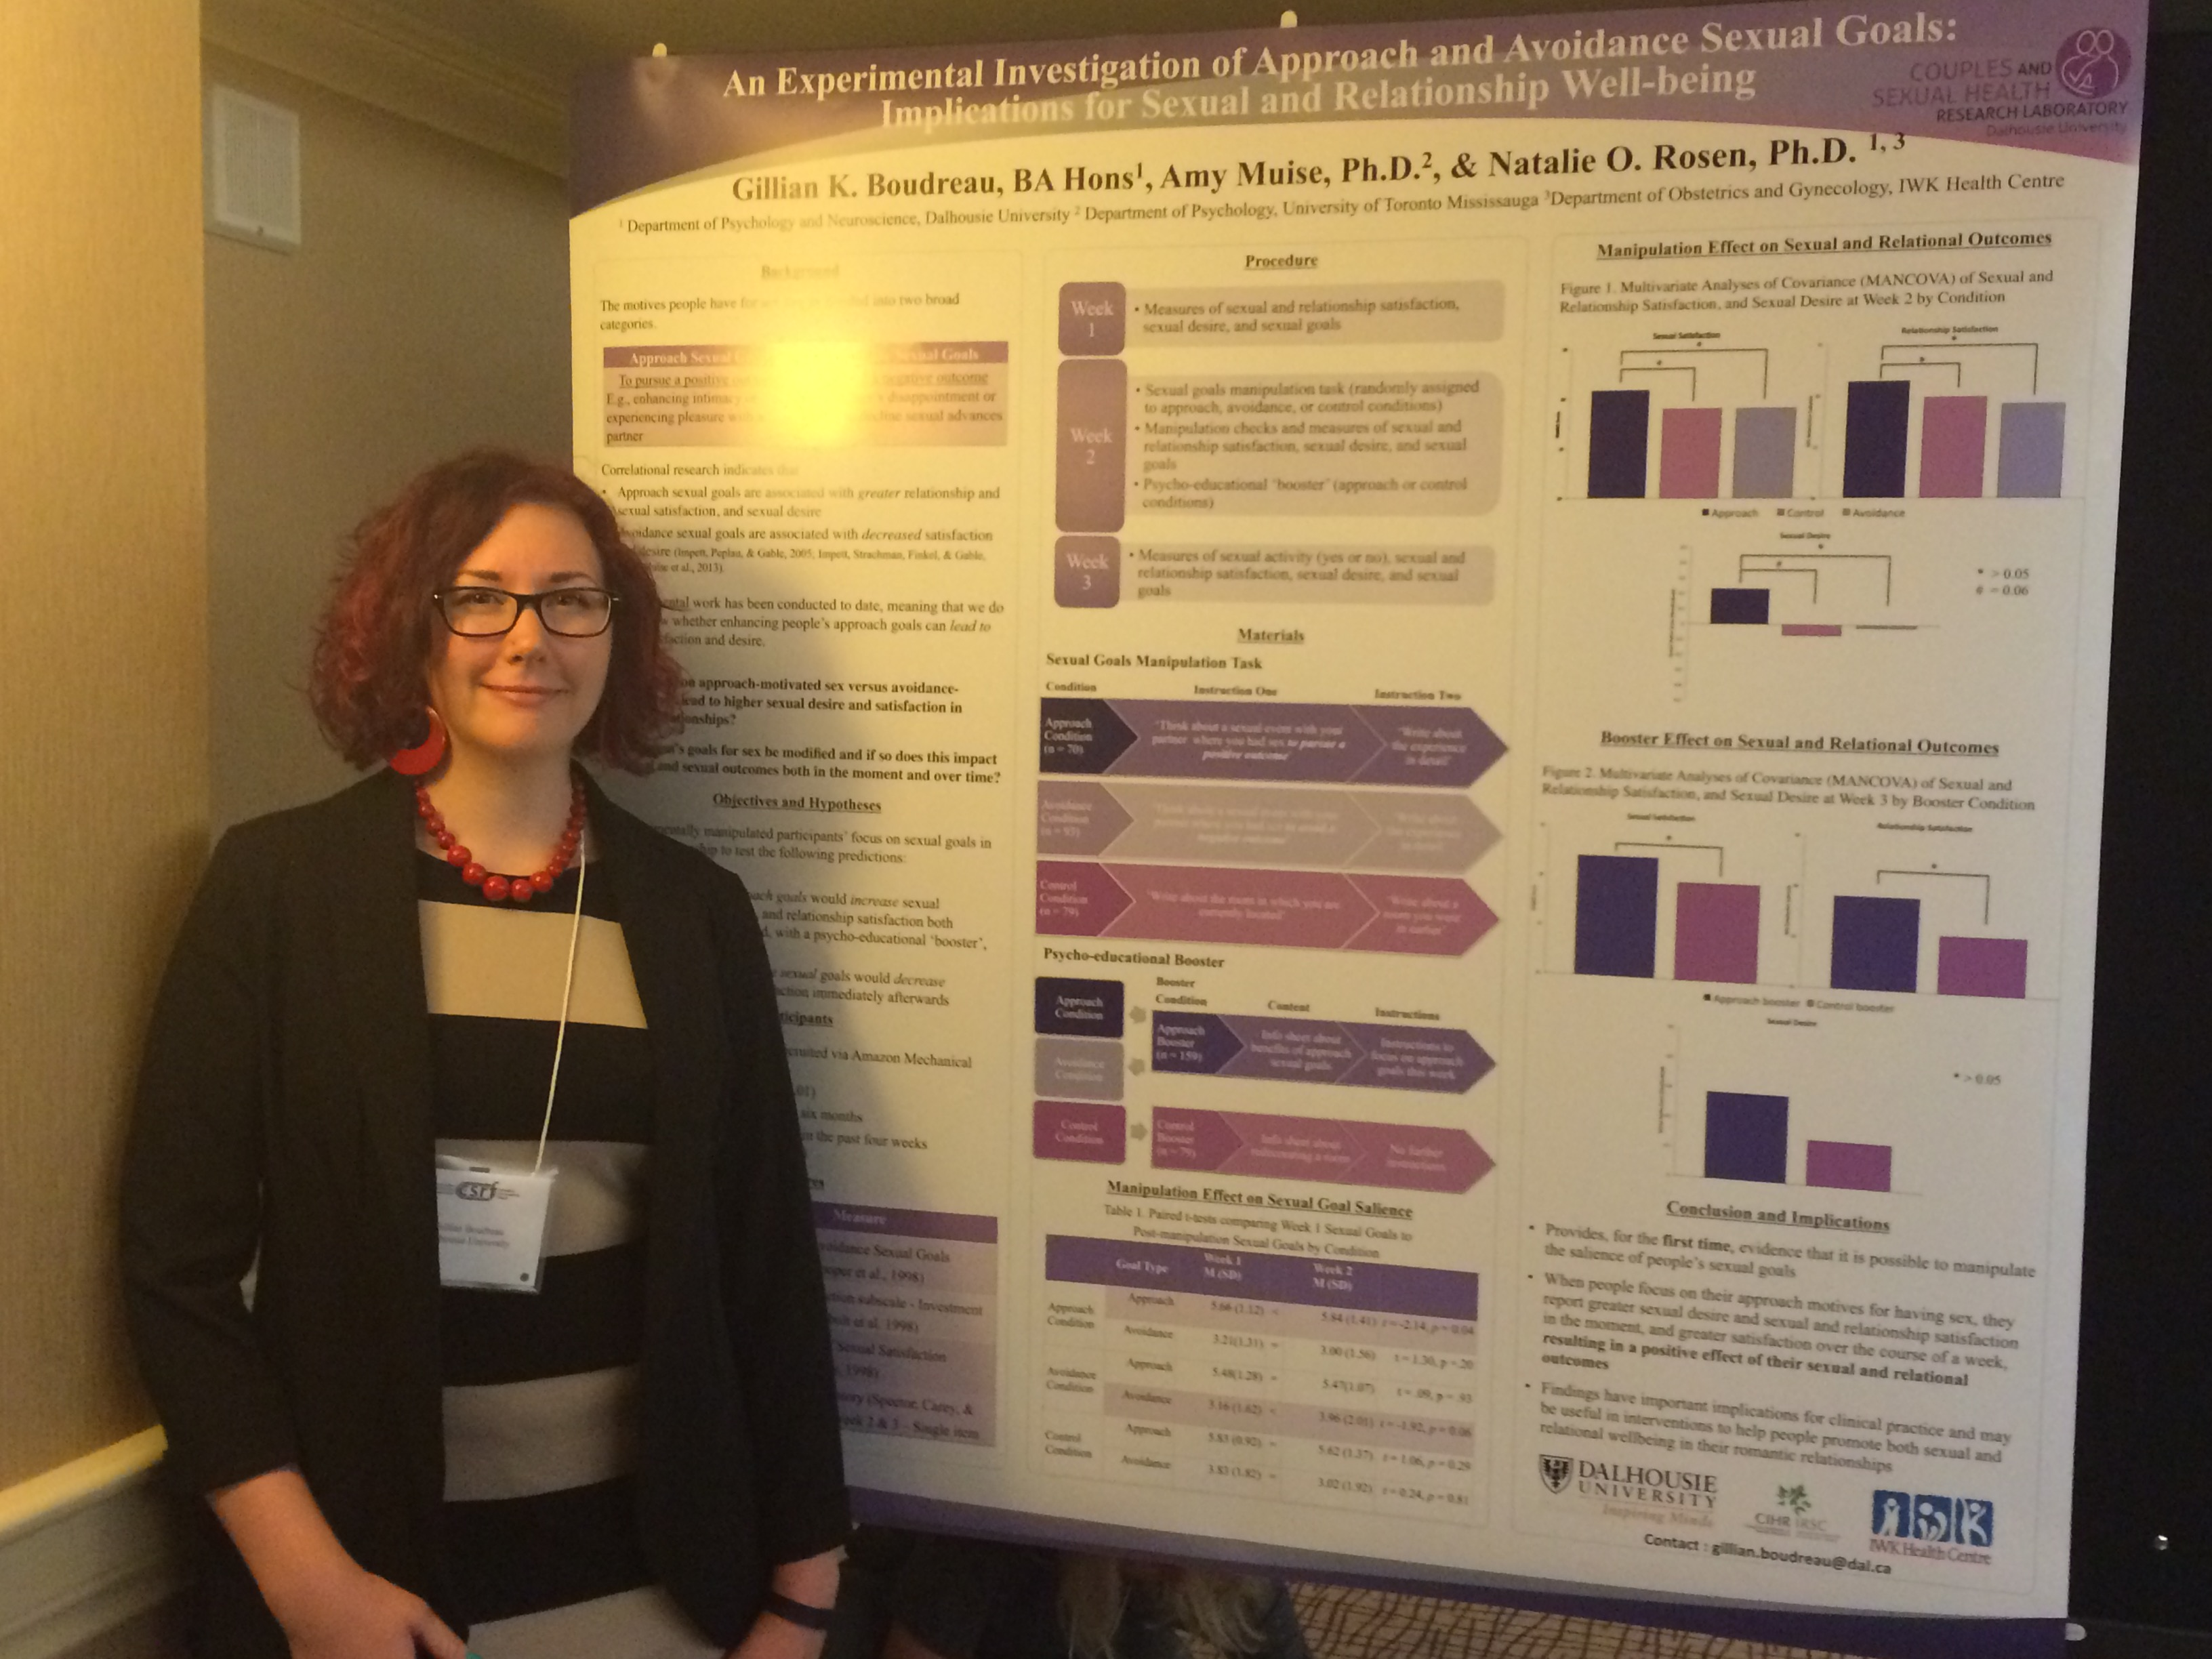 Gillian Boudreau with the poster she presented at the Canadian Sex Research Forum's Annual Meeting, 2015 in Kelowna, BC